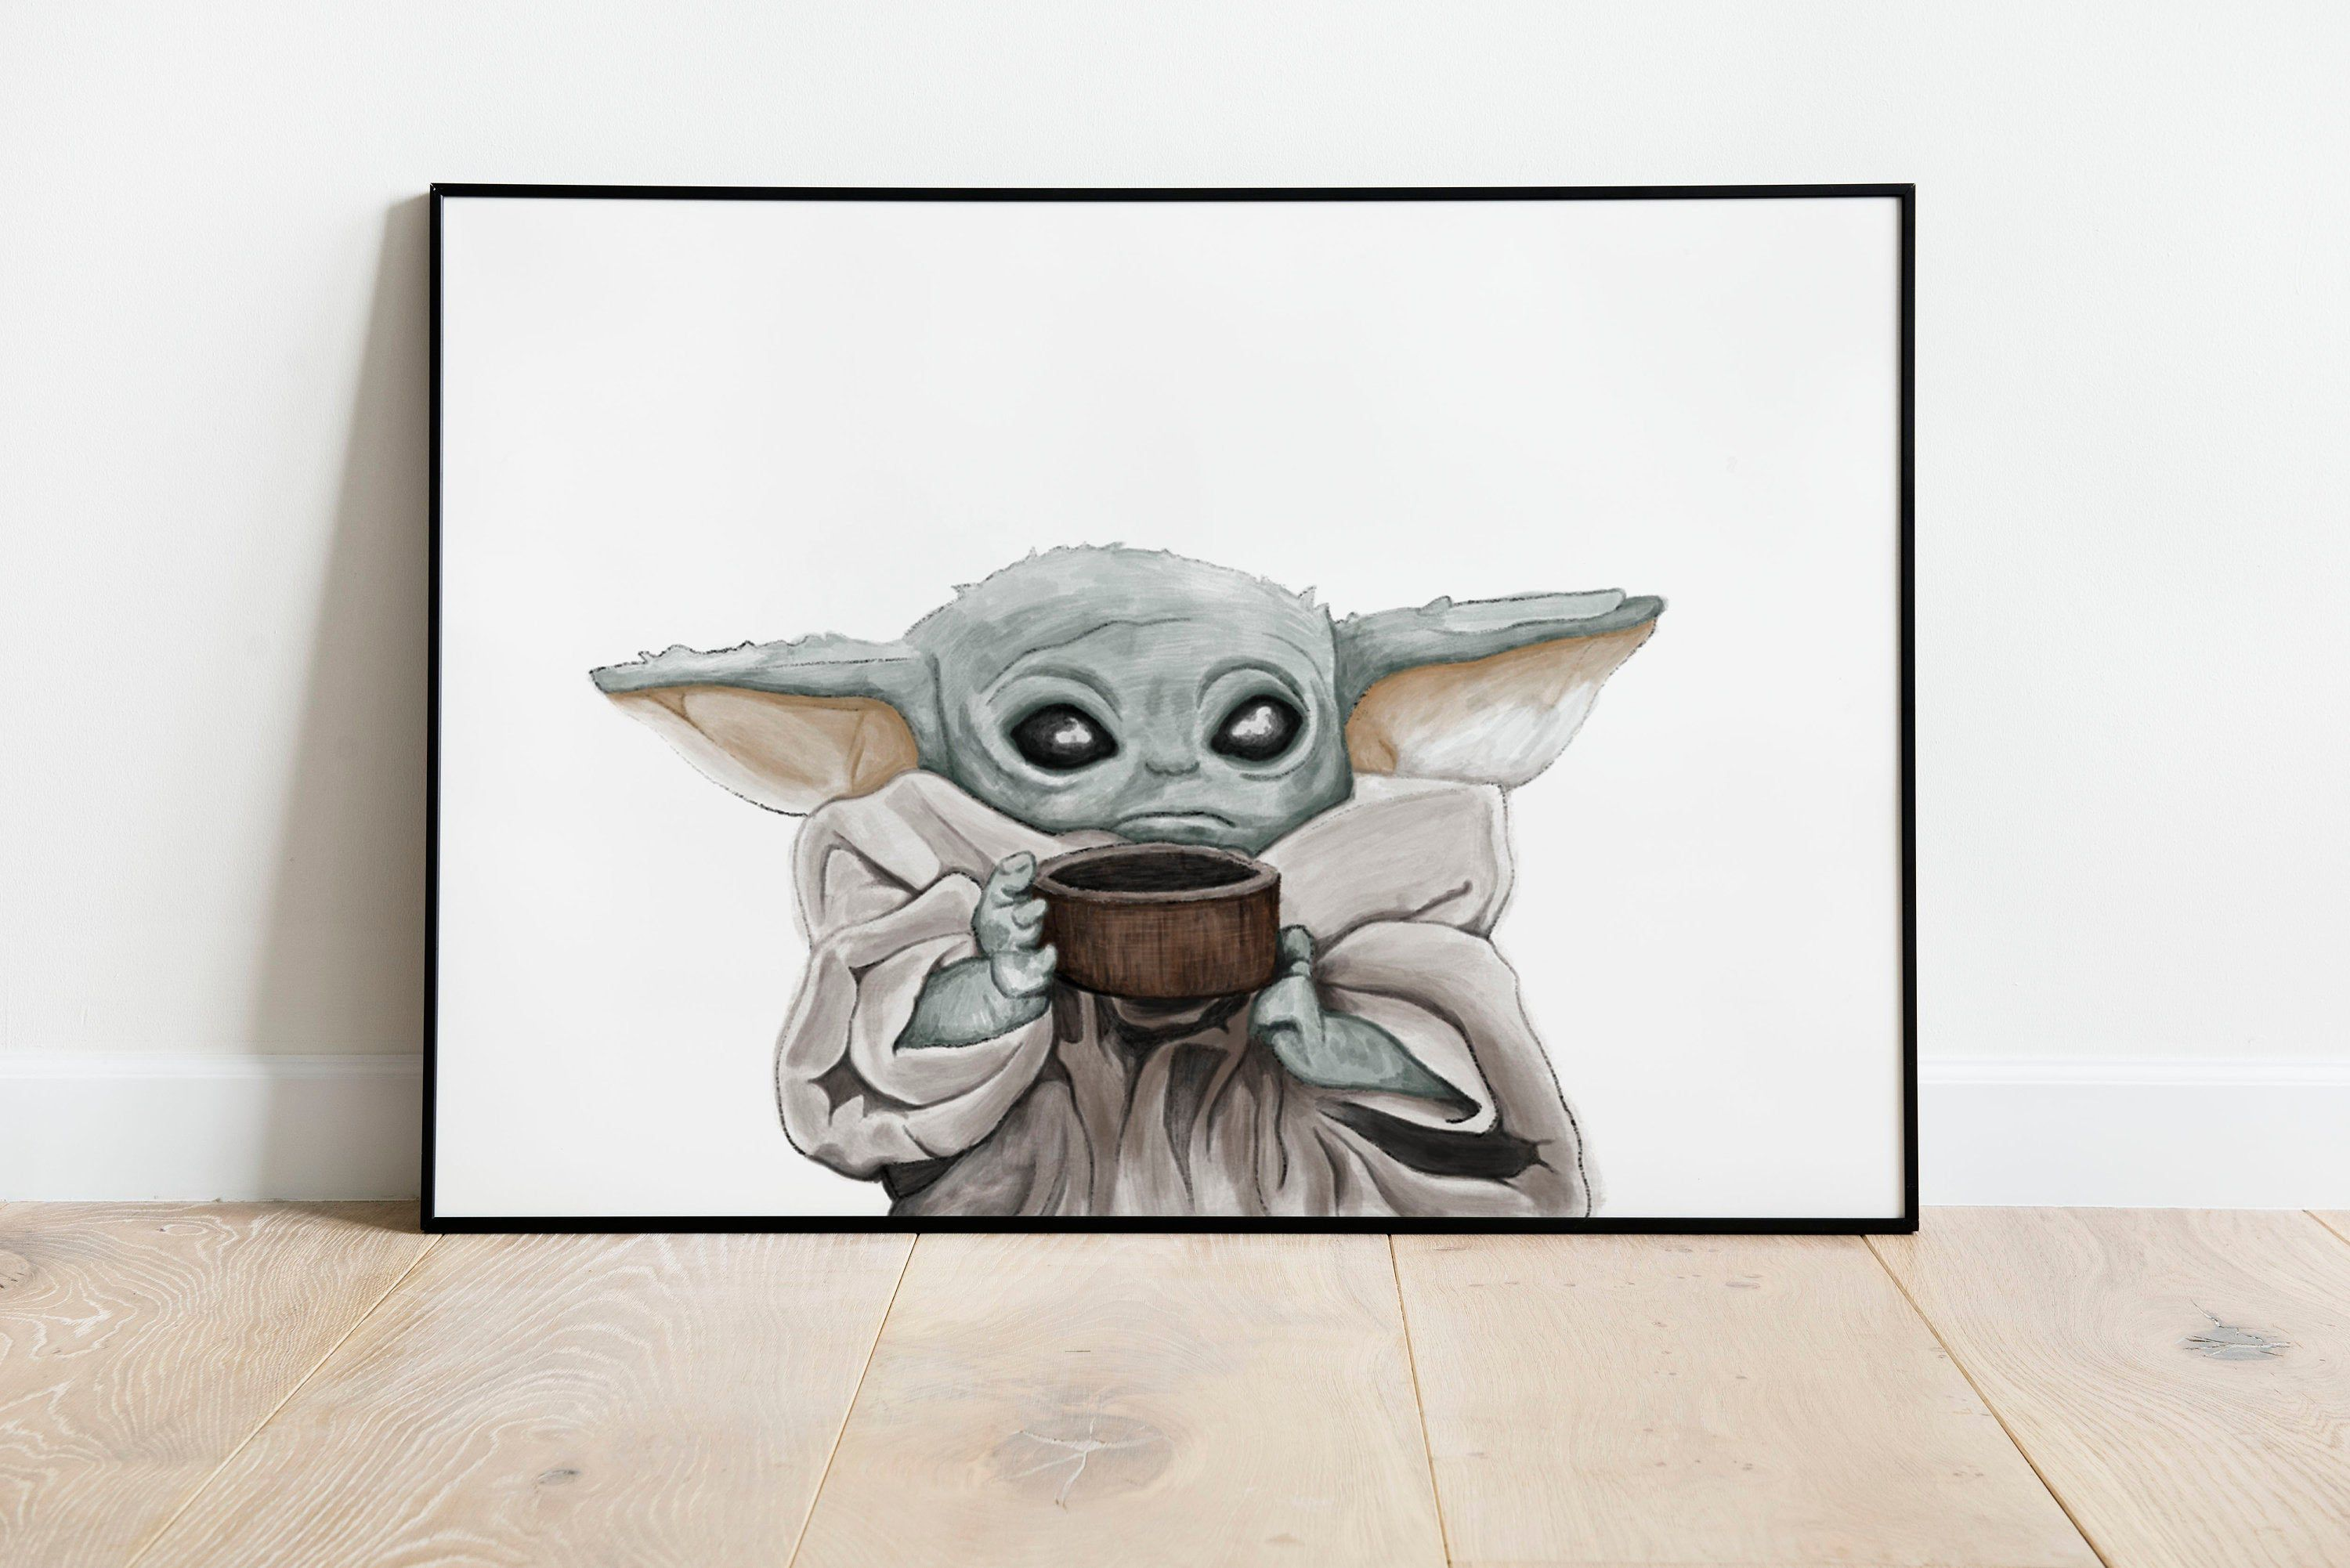 Excited To Share This Item From My Etsy Shop Baby Yoda A3 A4 Print The Mandalorian Mando Star Wars Coffee Wall Art Poster Wate Poster Wall Art Art Poster Art